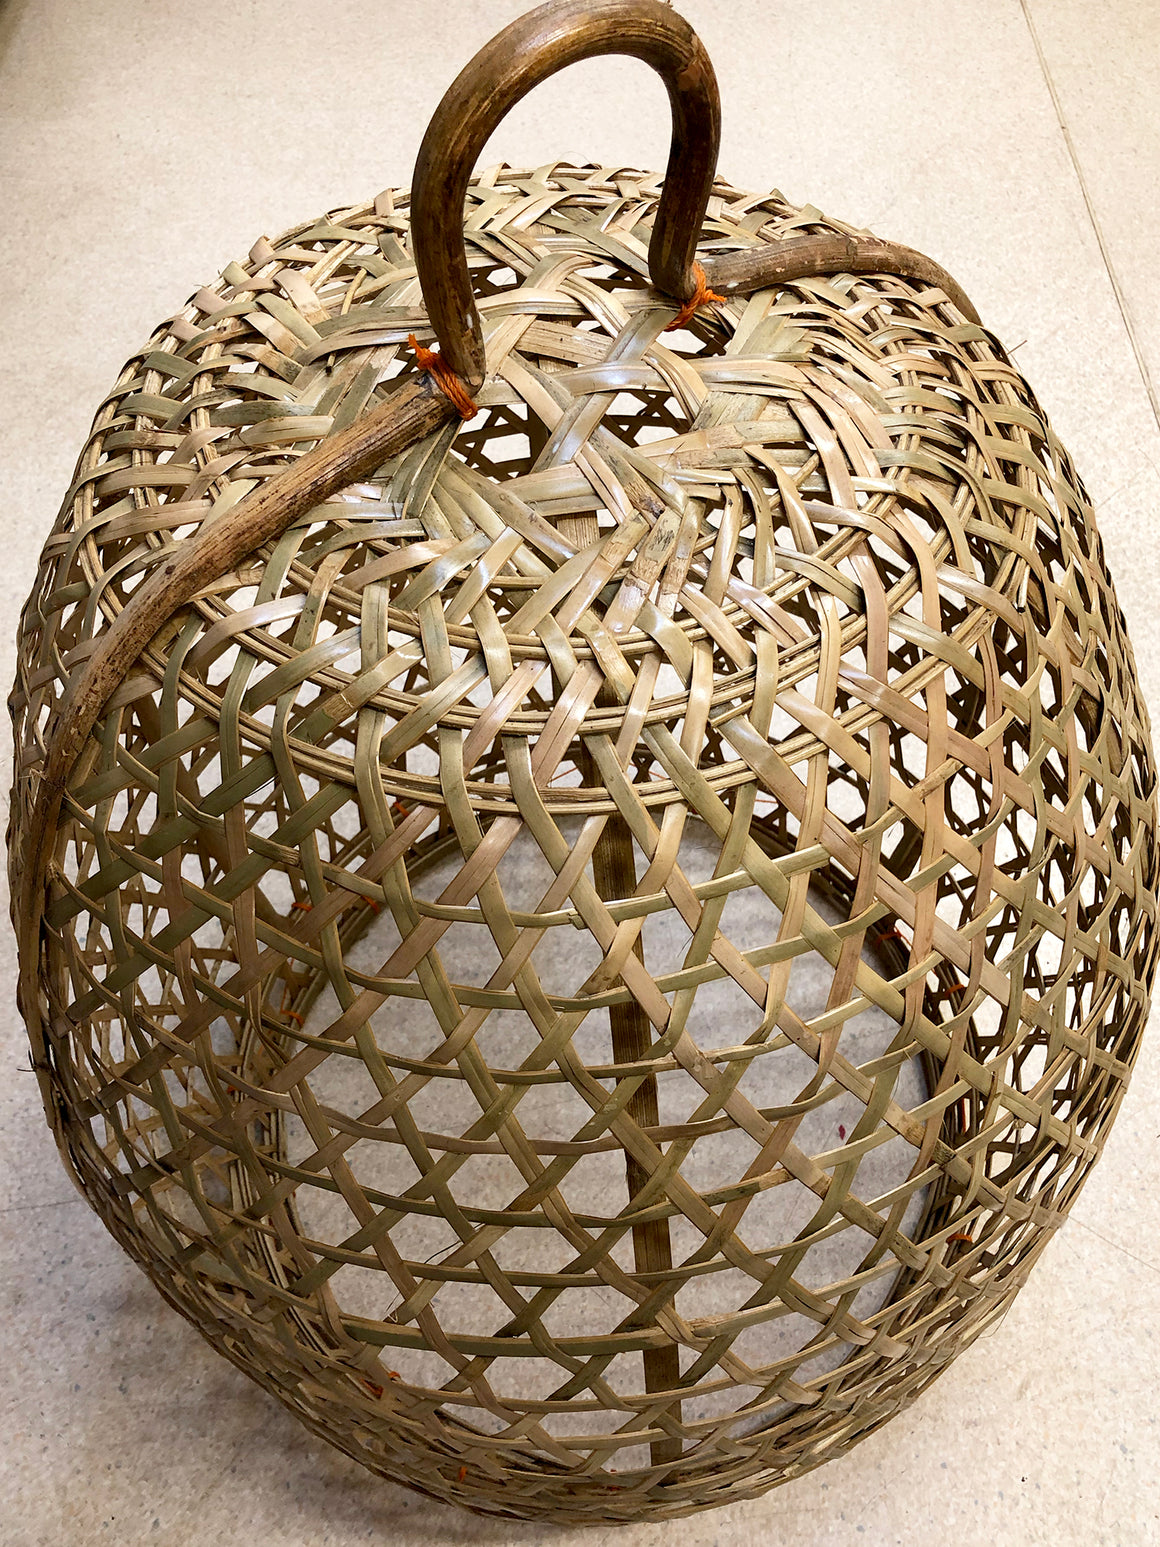 Balinese Chook basket